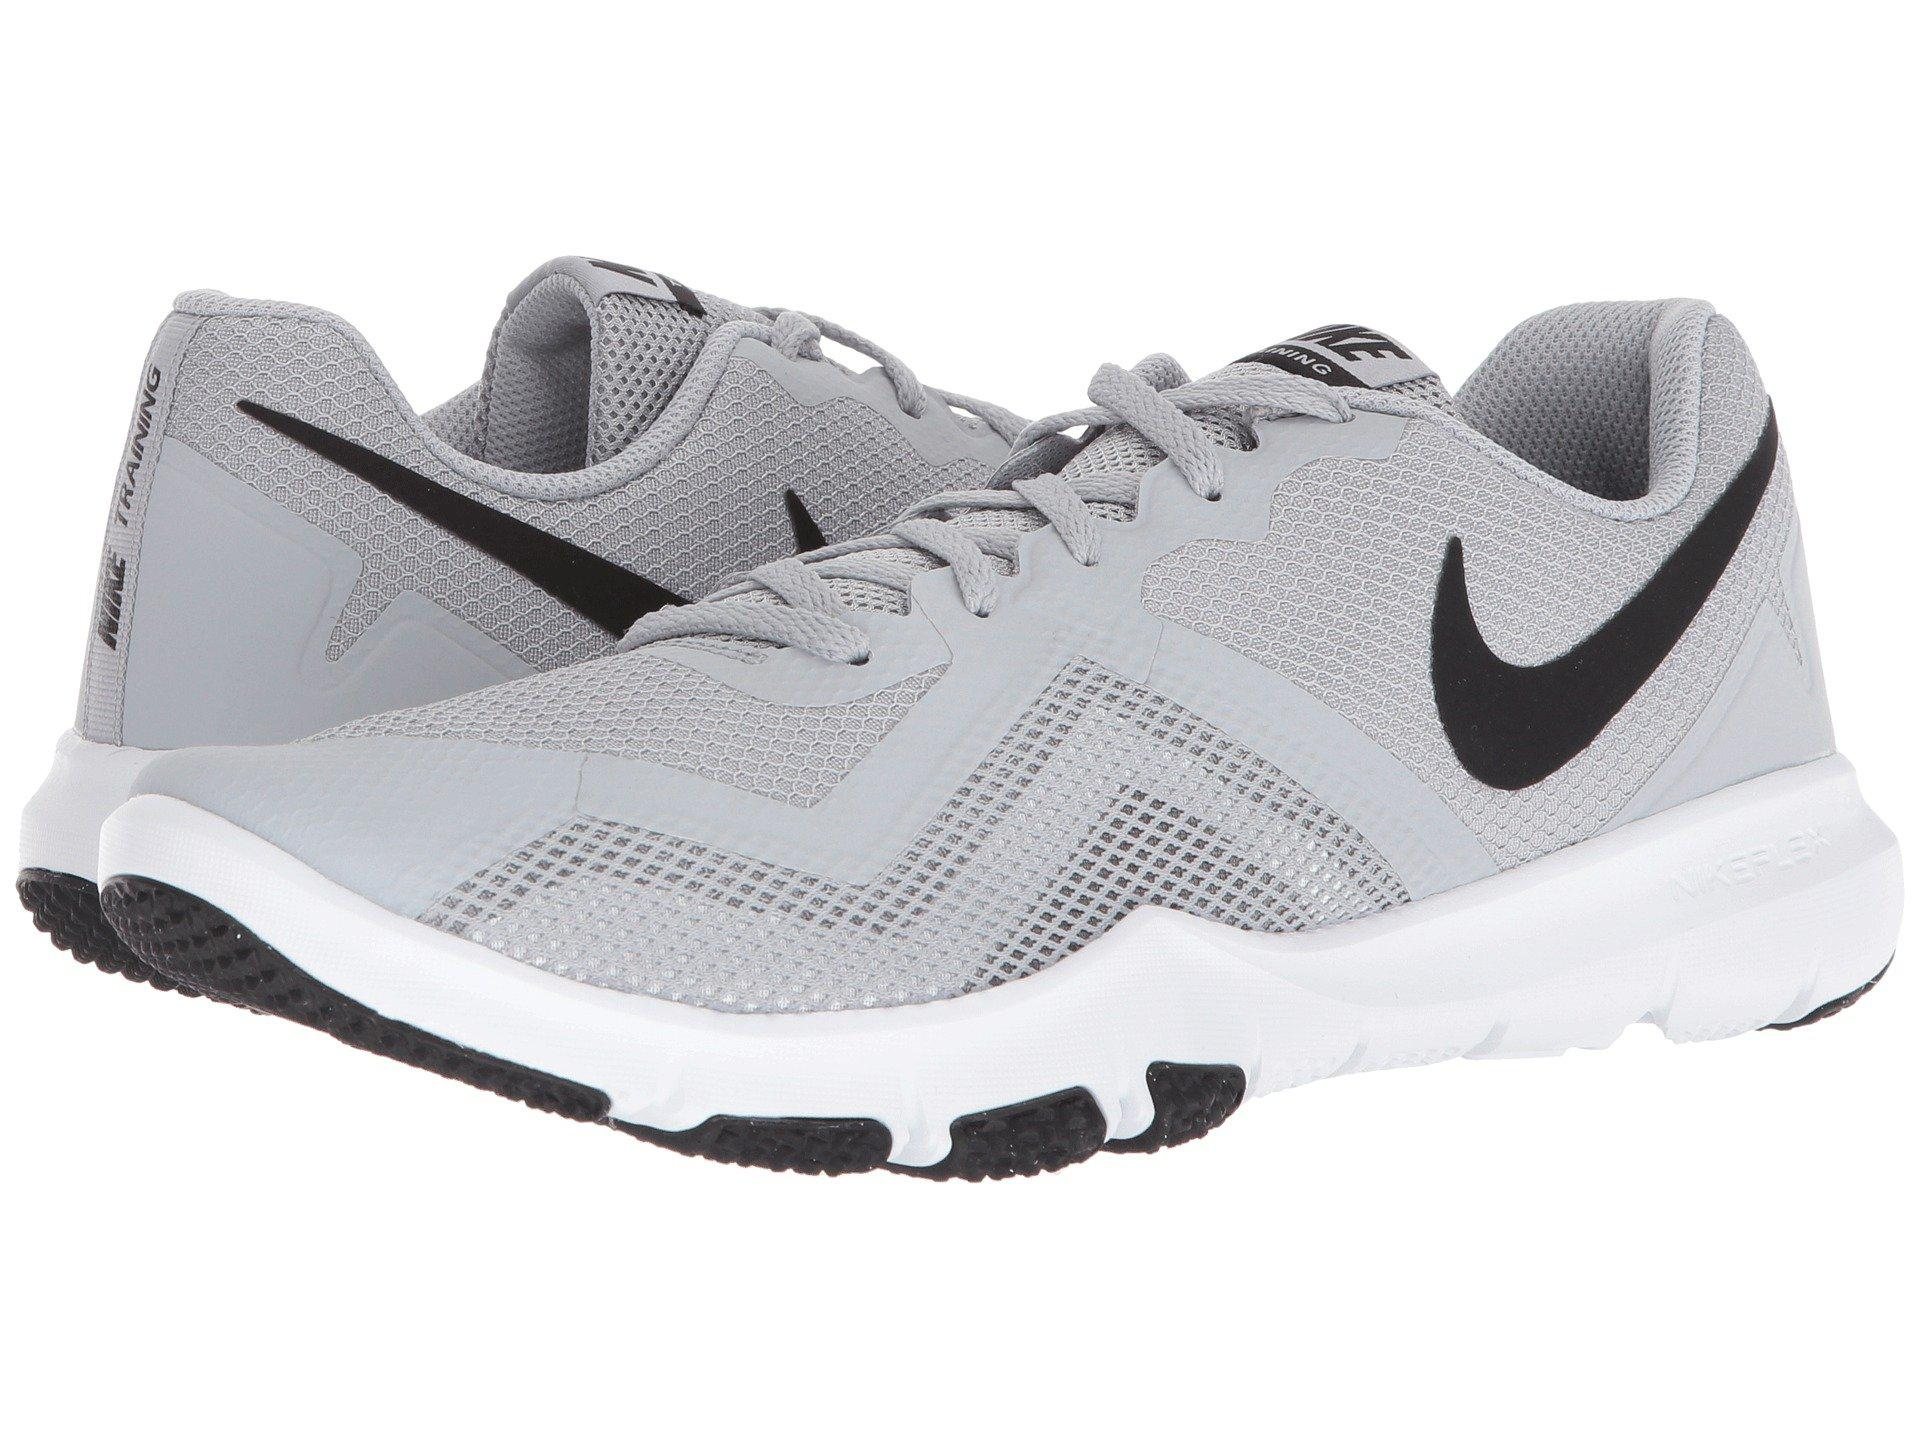 bf5b58ee653cd Lyst - Nike Flex Control Ii Cross Trainer in Gray for Men - Save 40%